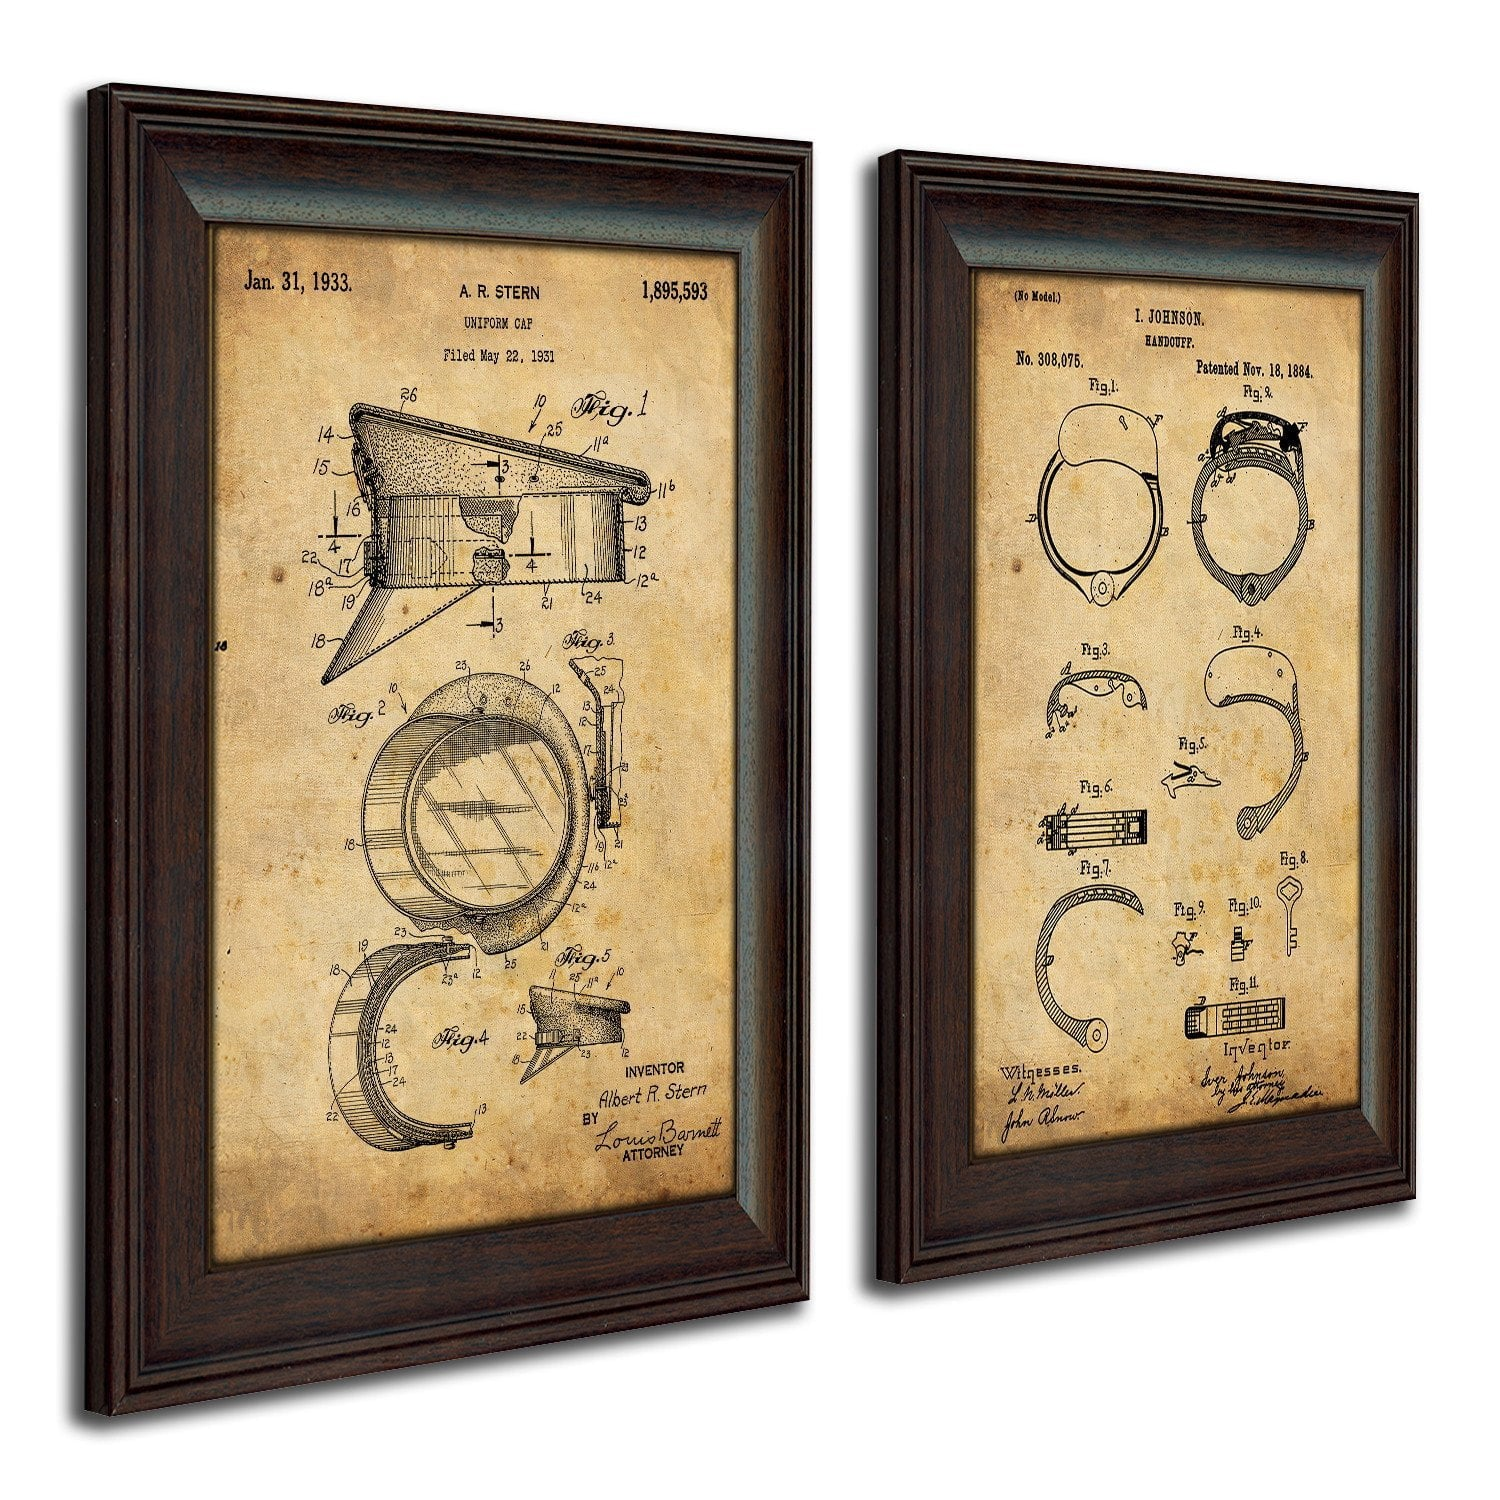 Framed Wall Art Sets police officer leo patent framed wall art gift set | personal-prints